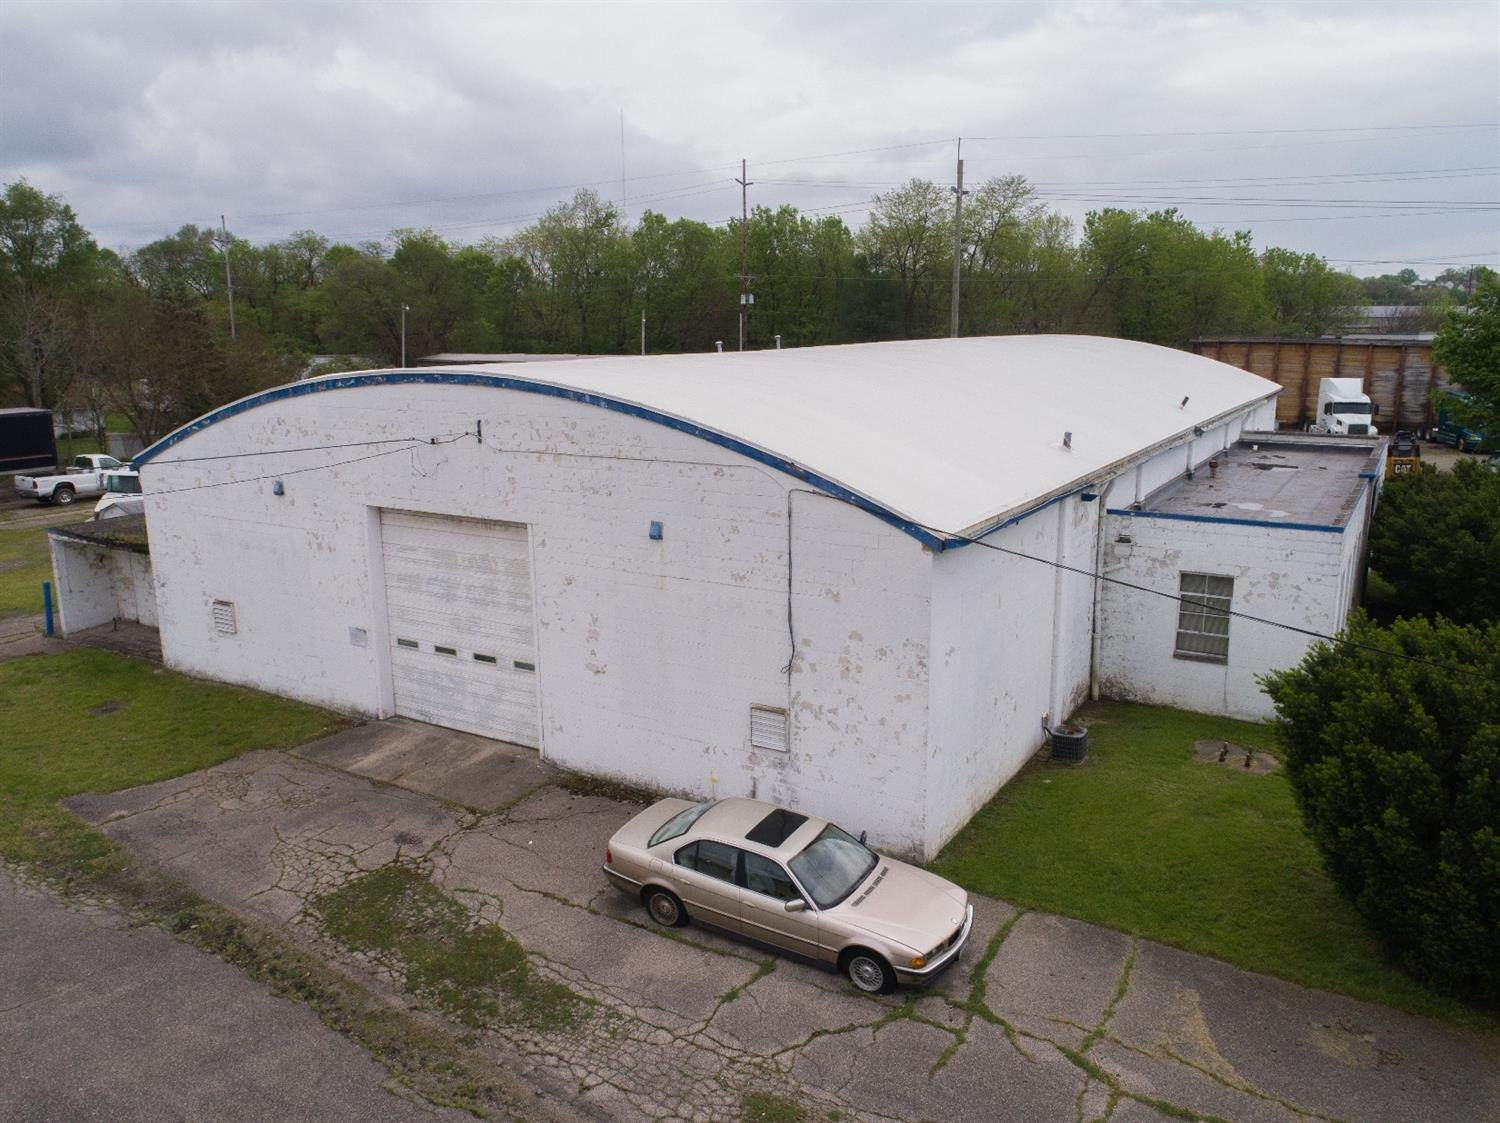 Commercial for Sale at 426 Neal Boulevard Hamilton, Ohio 45011 United States